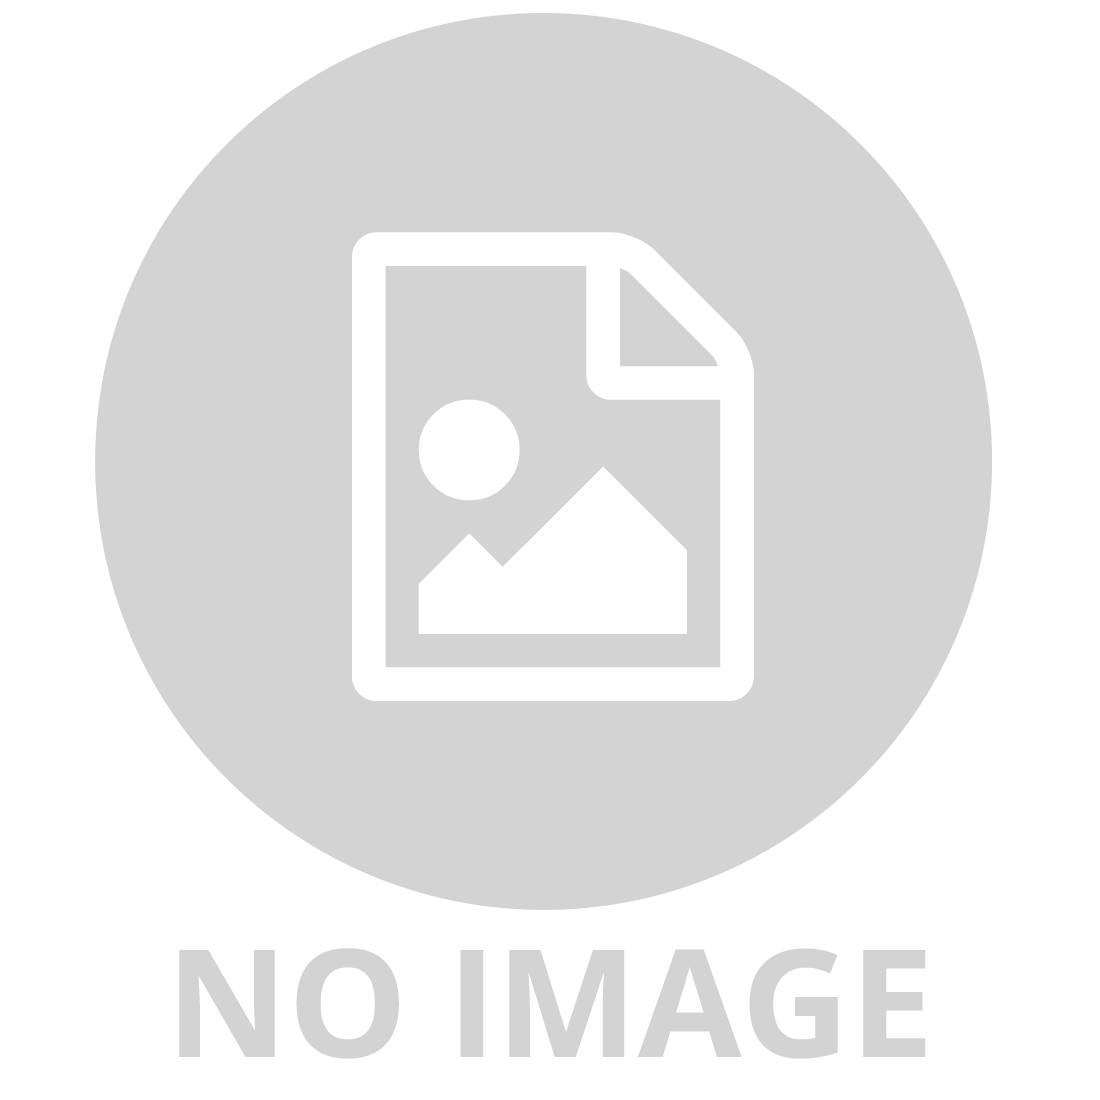 TAMIYA ACRYLIC X 26 CLEAR ORANGE GLOSS